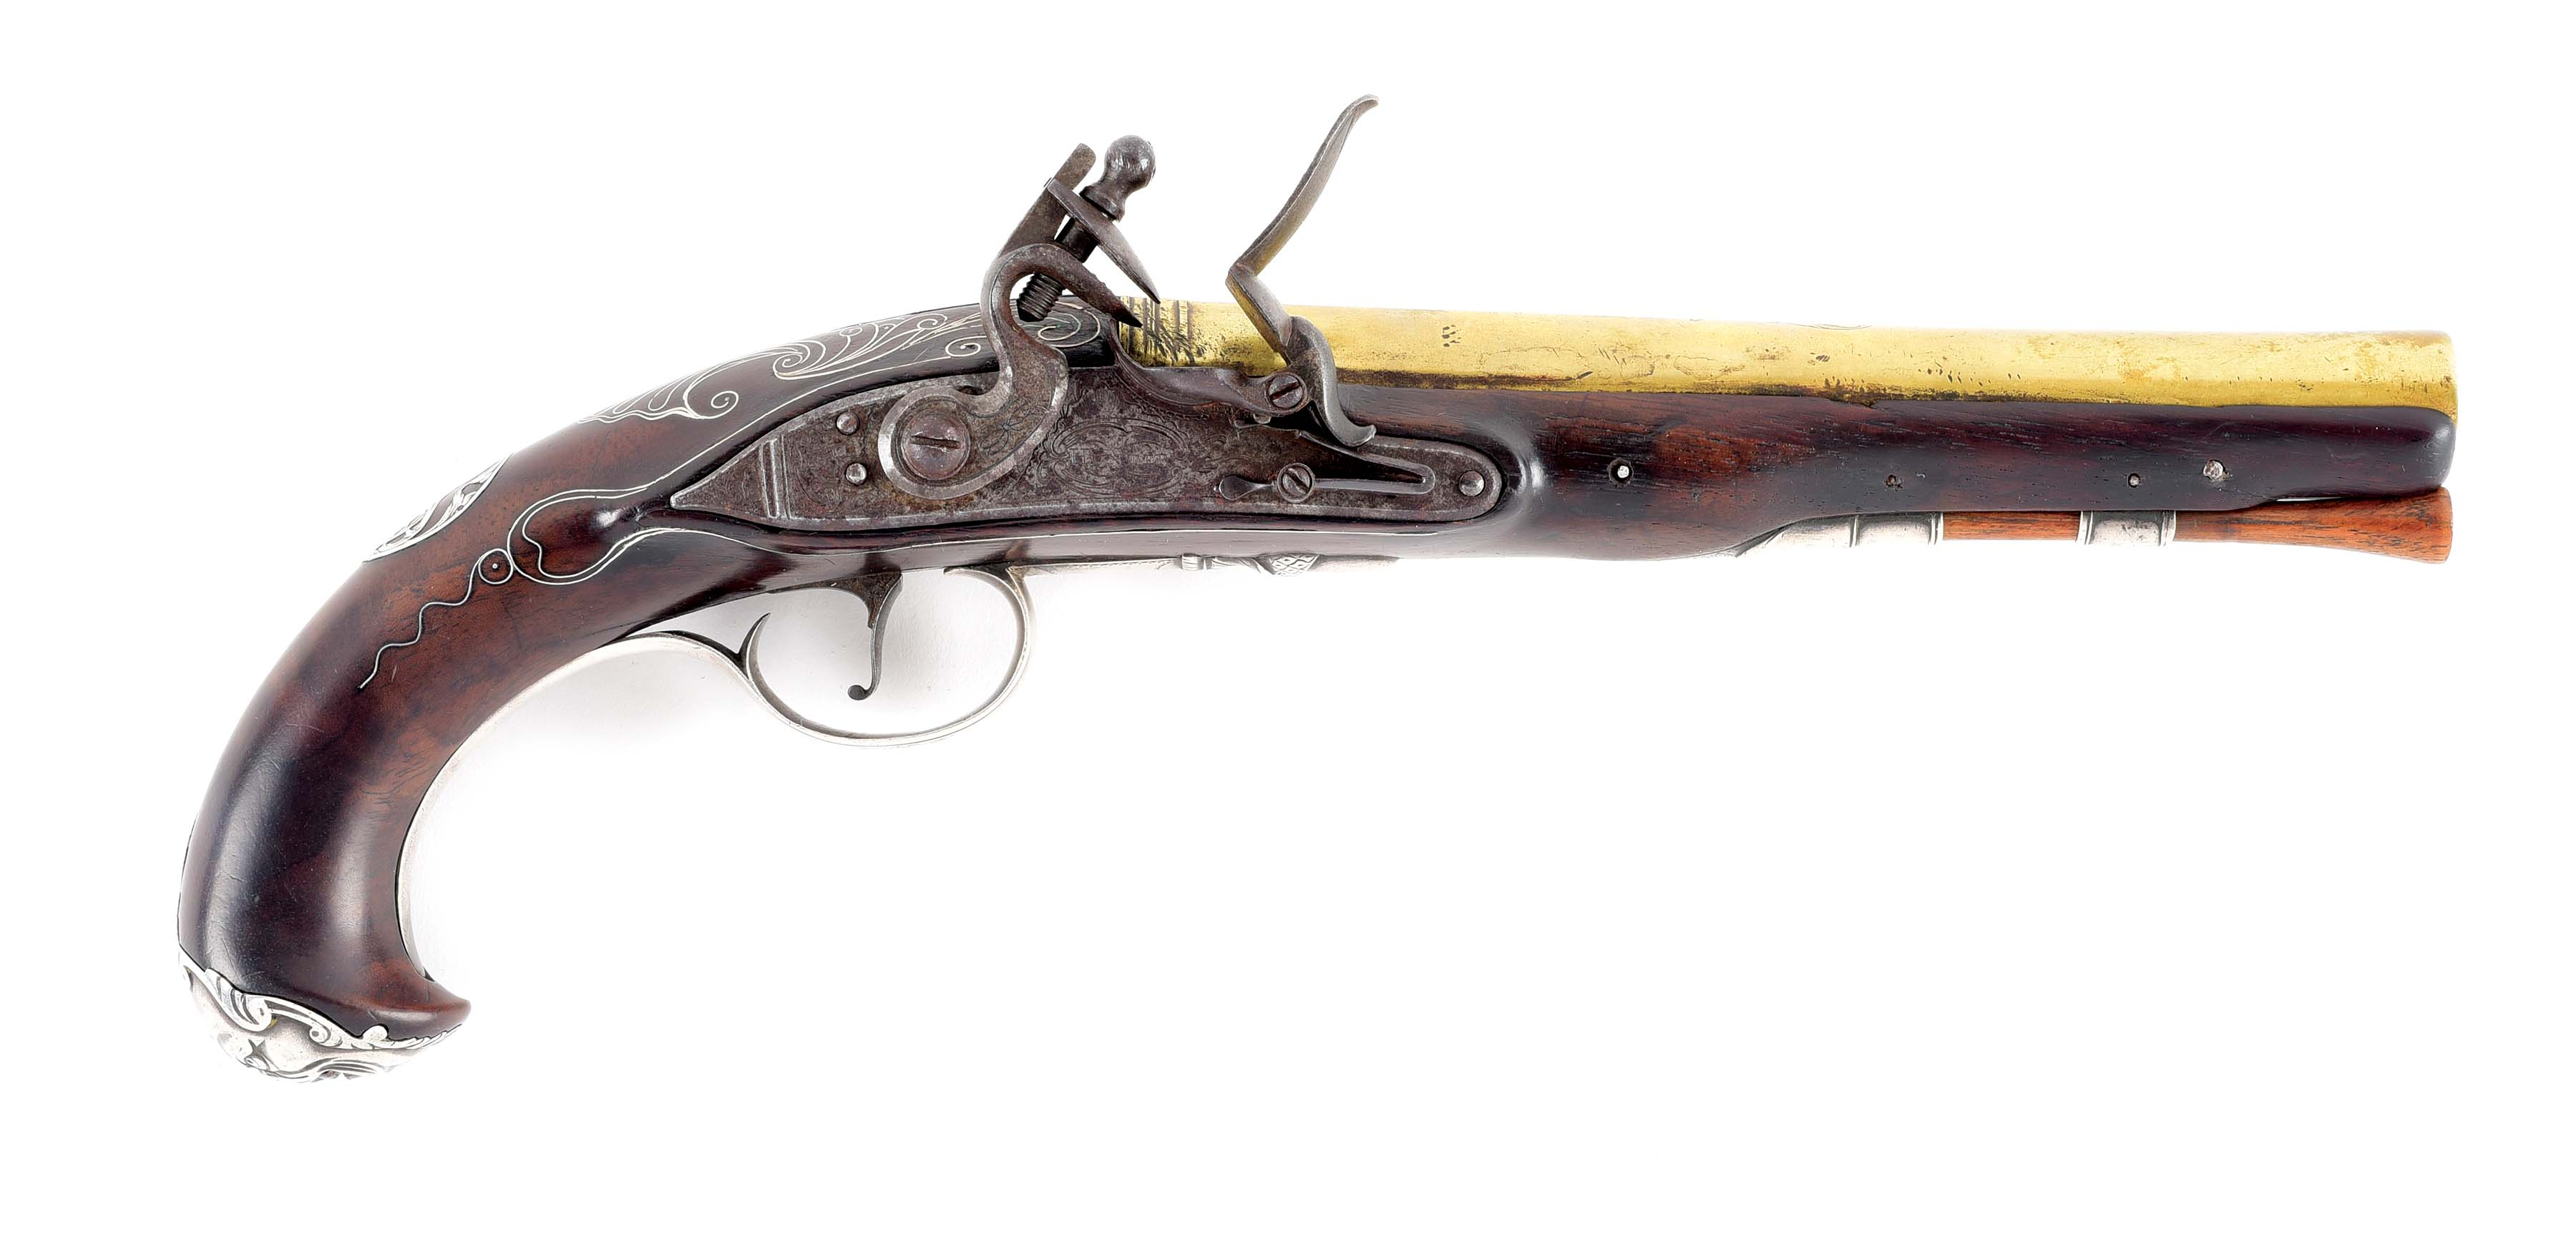 Morphy's rolls out historical firearms & militaria for Nov. 17-18 auction